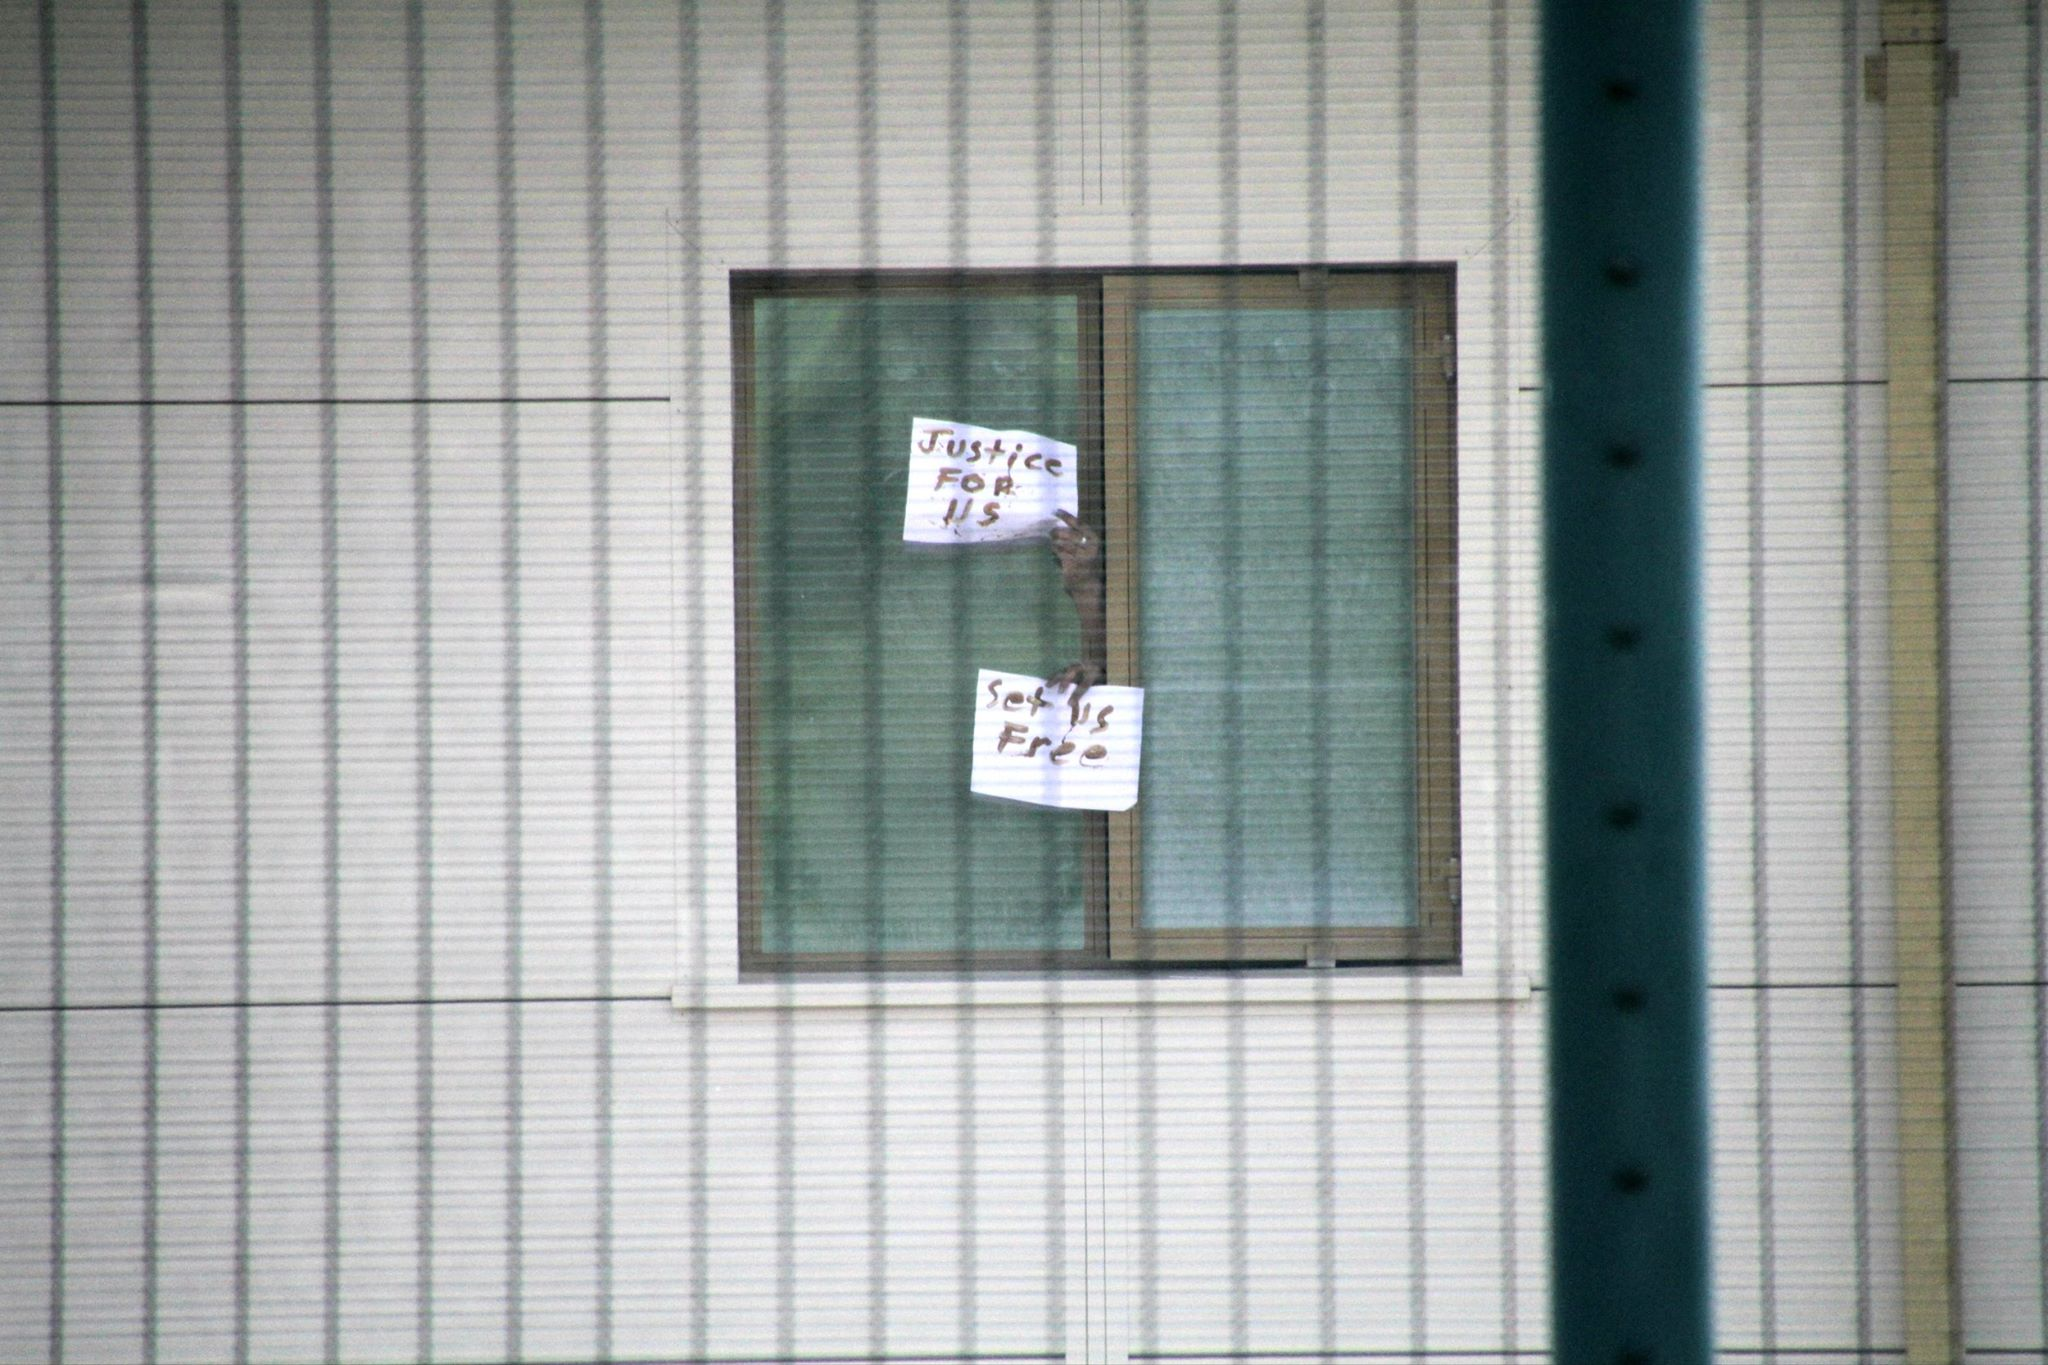 two hands coming out of a window of an immigration detention centre holding up pieces of paper with the words 'justice for us' 'set us free' written on it